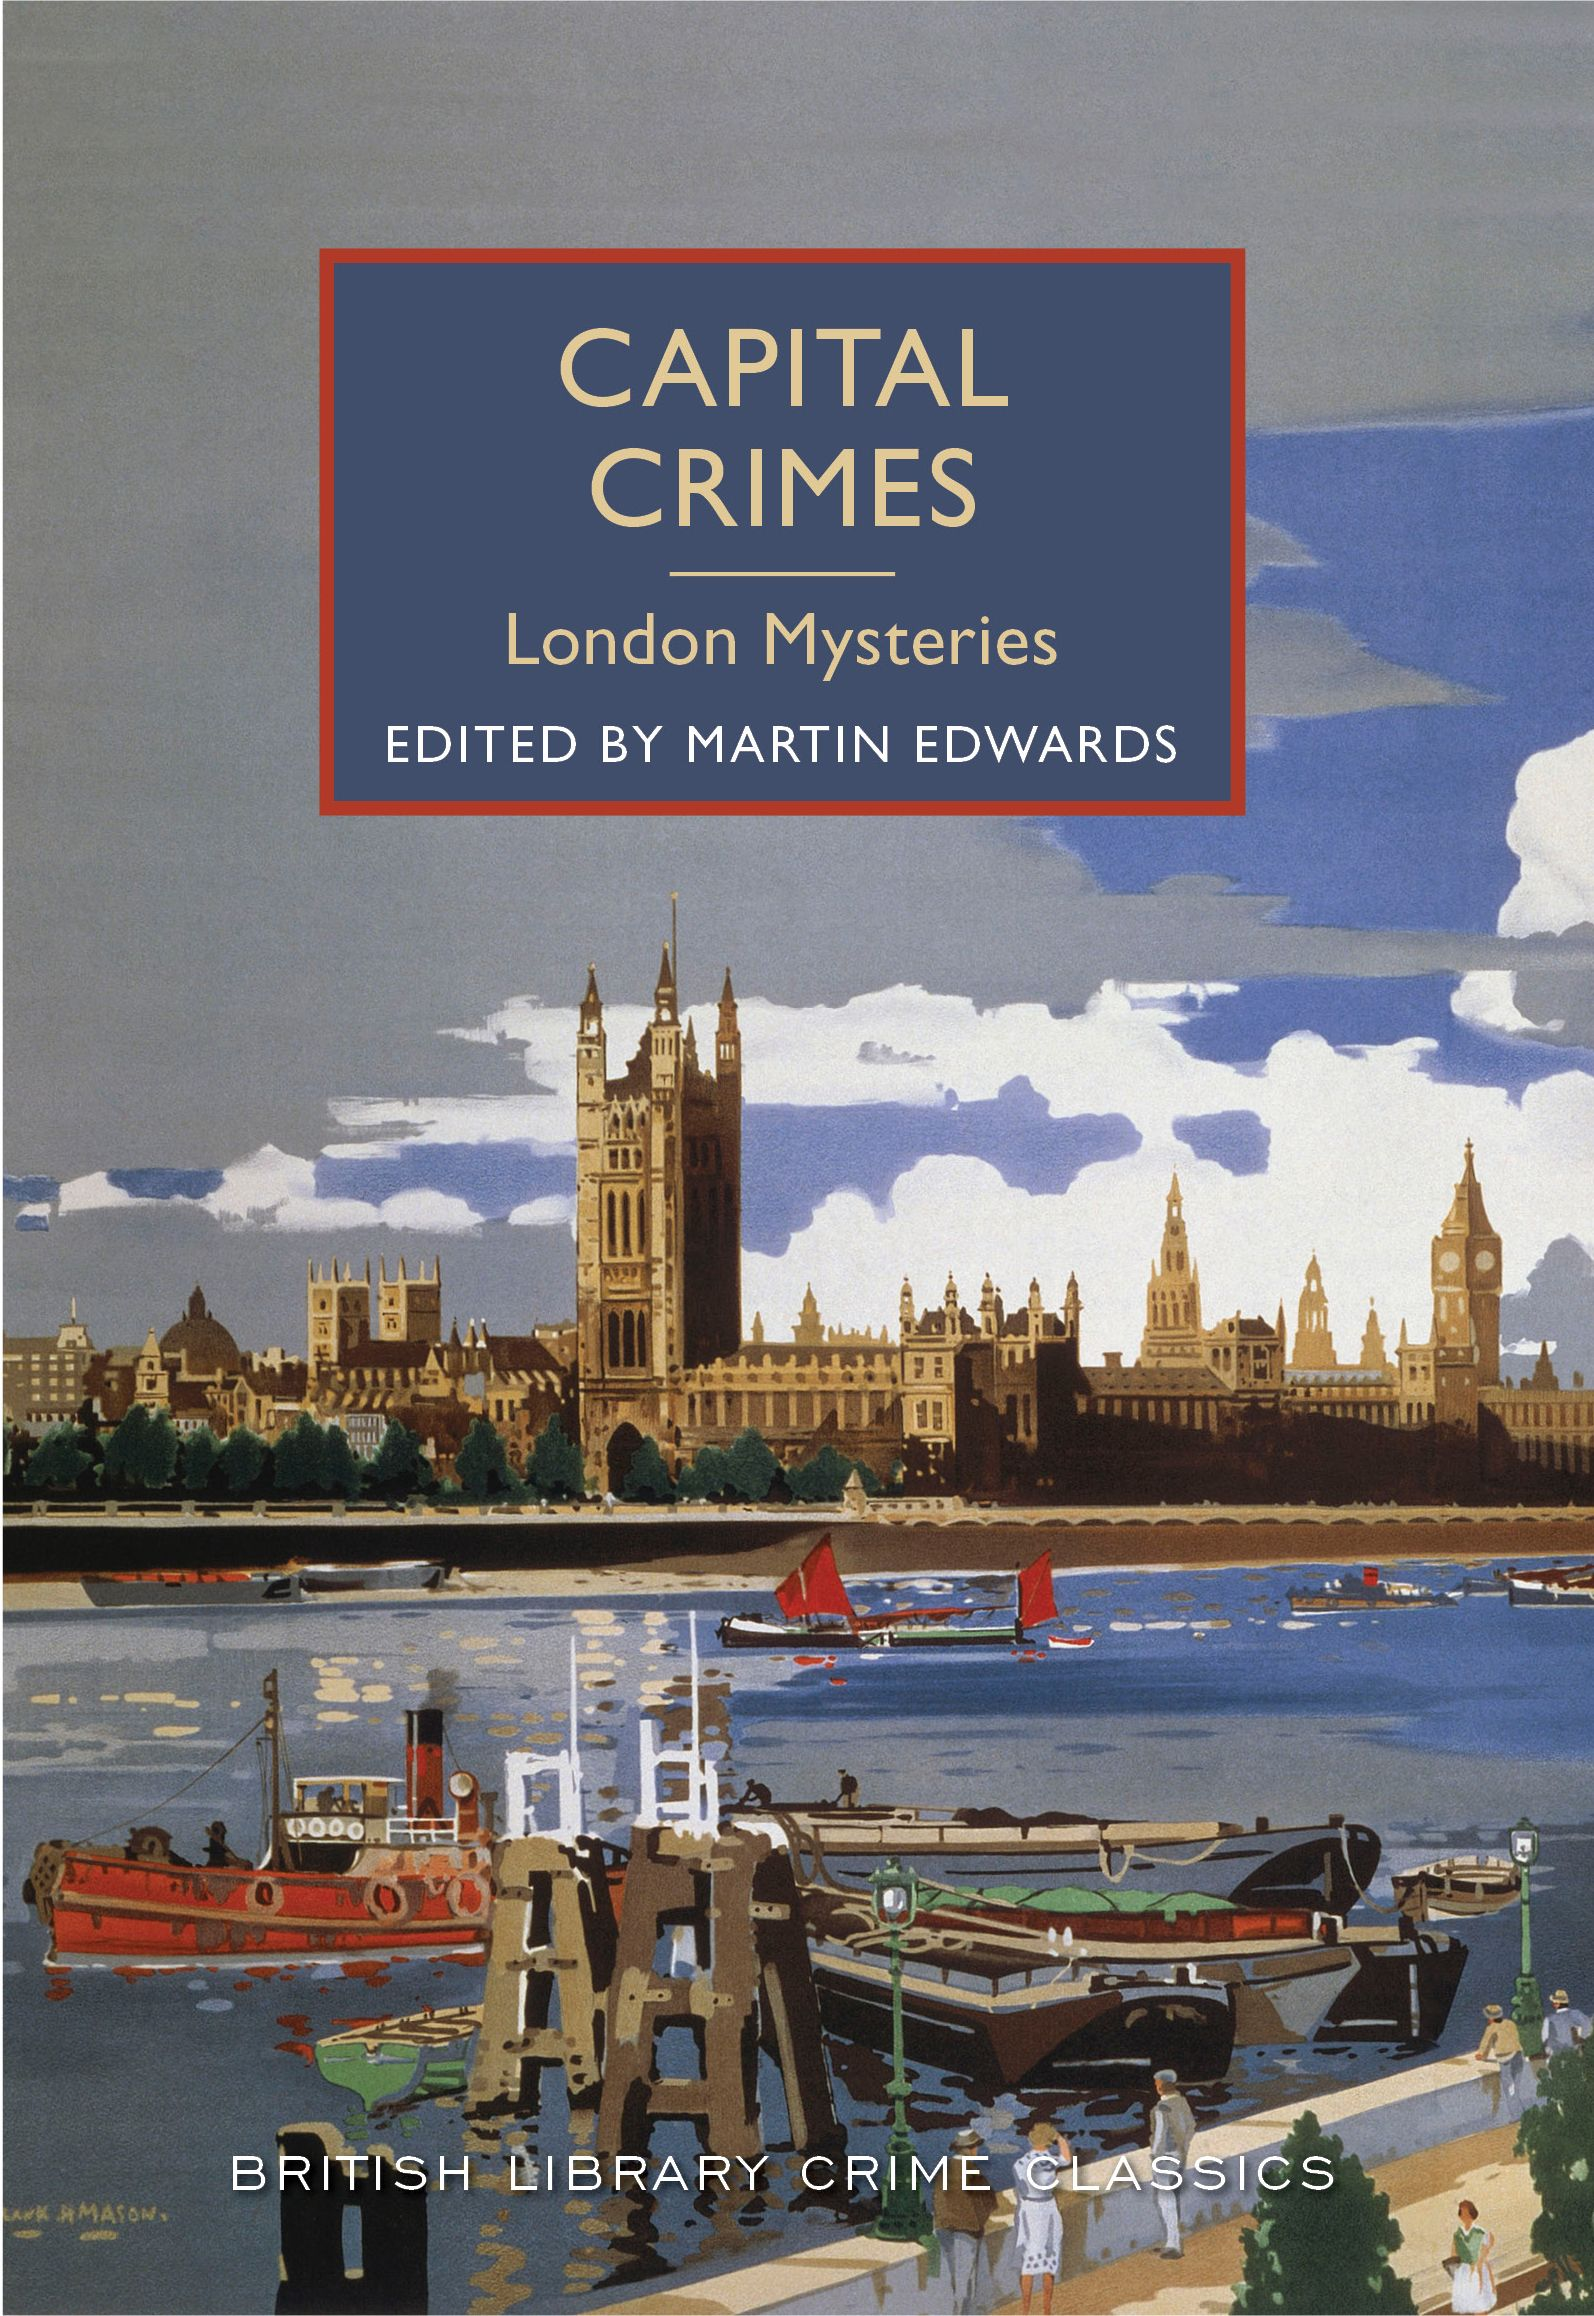 Capital Crimes: London Mysteries: A British Library Crime Classic Editor: Martin Edwards An eclectic collection of London-based crime stories by various British authors.